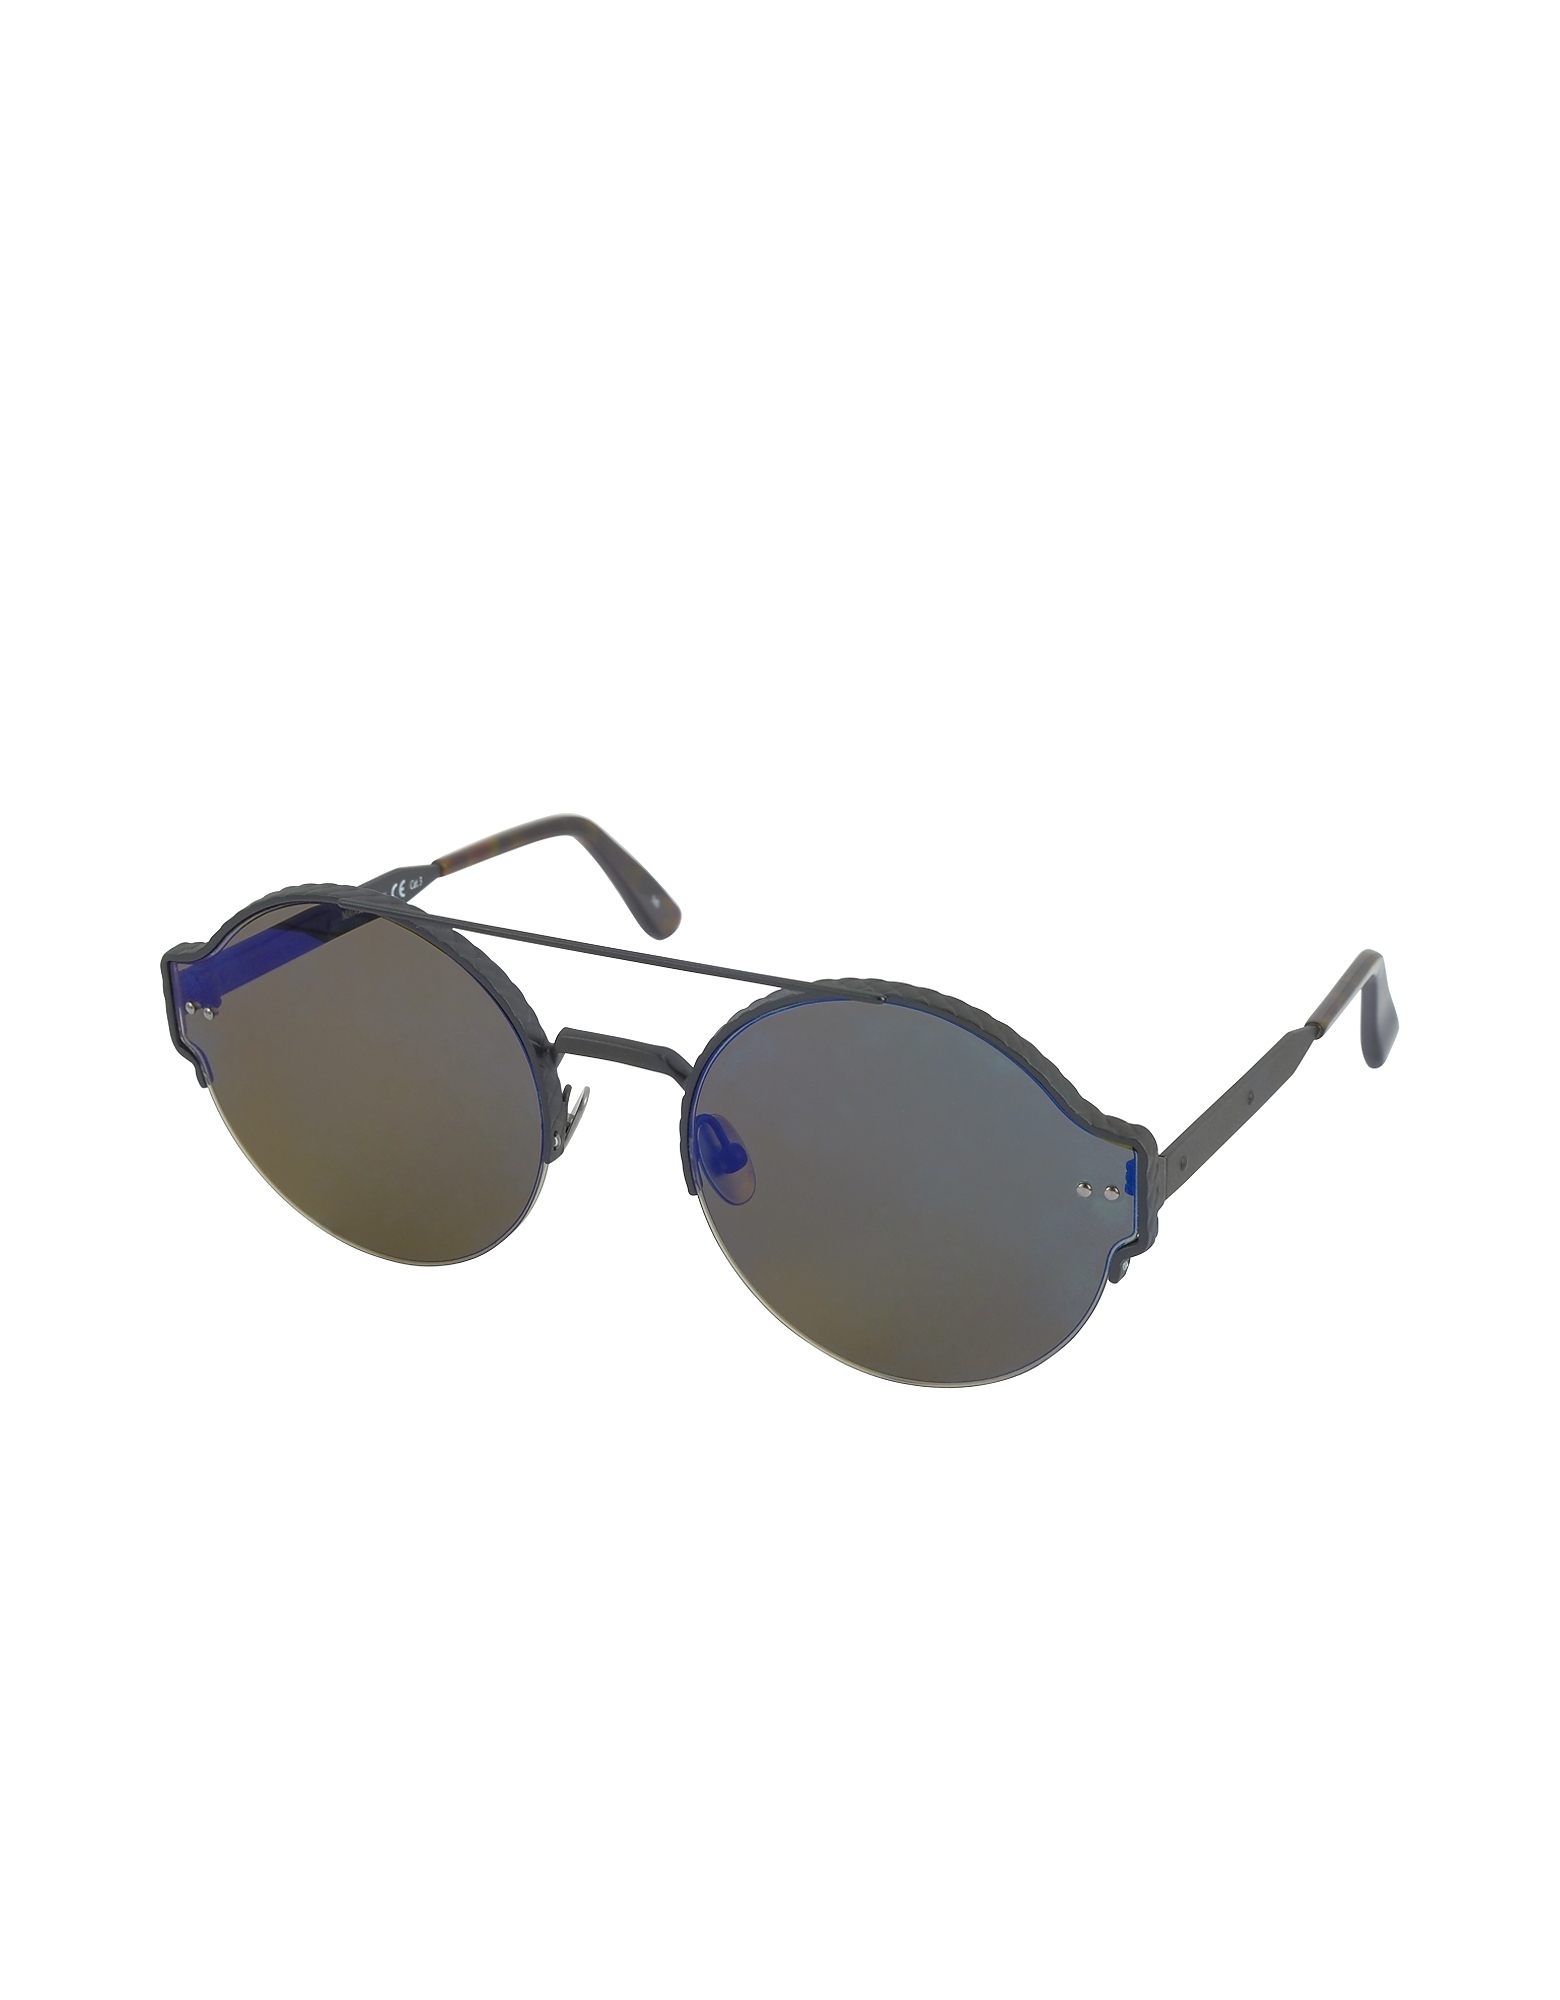 BV0013S Round Metal Frame Unisex Sunglasses от Forzieri.com INT